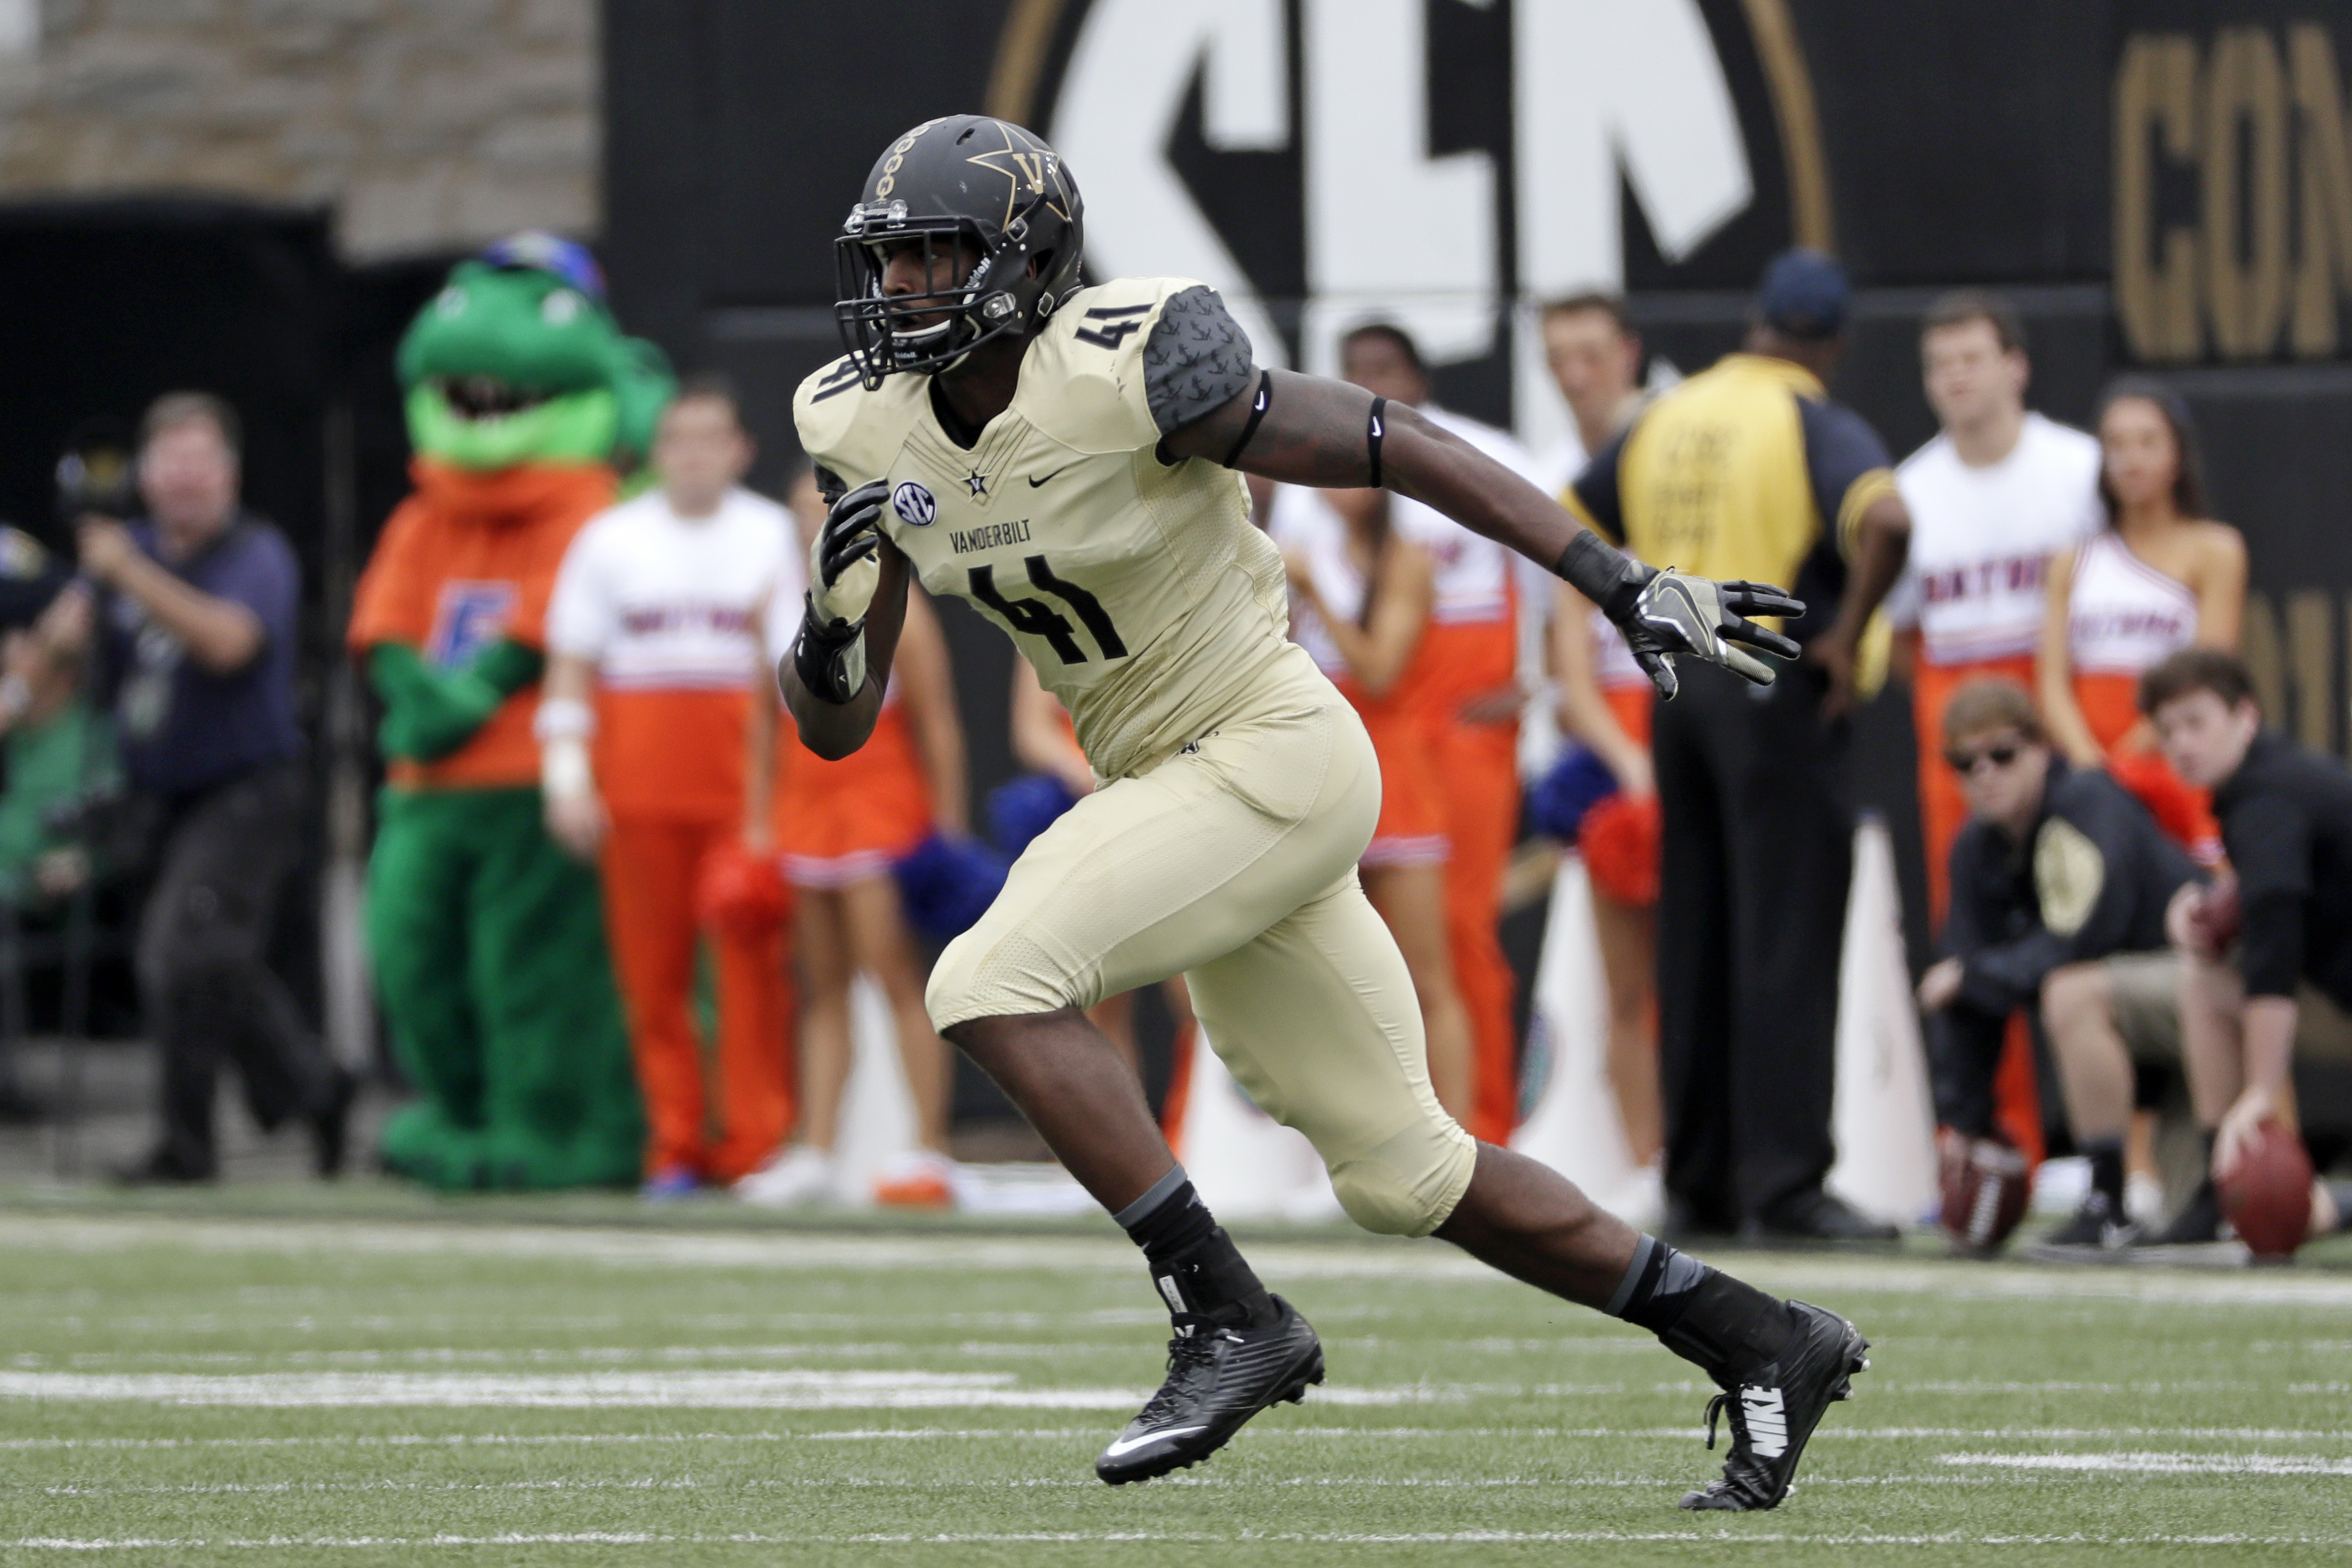 FILE --In this Oct. 1, 2016, file photo, Vanderbilt linebacker Zach Cunningham plays against Florida in an NCAA college football game in Nashville, Tenn. Cunningham is making his case for Southeastern Conference defensive player of the year with one remar